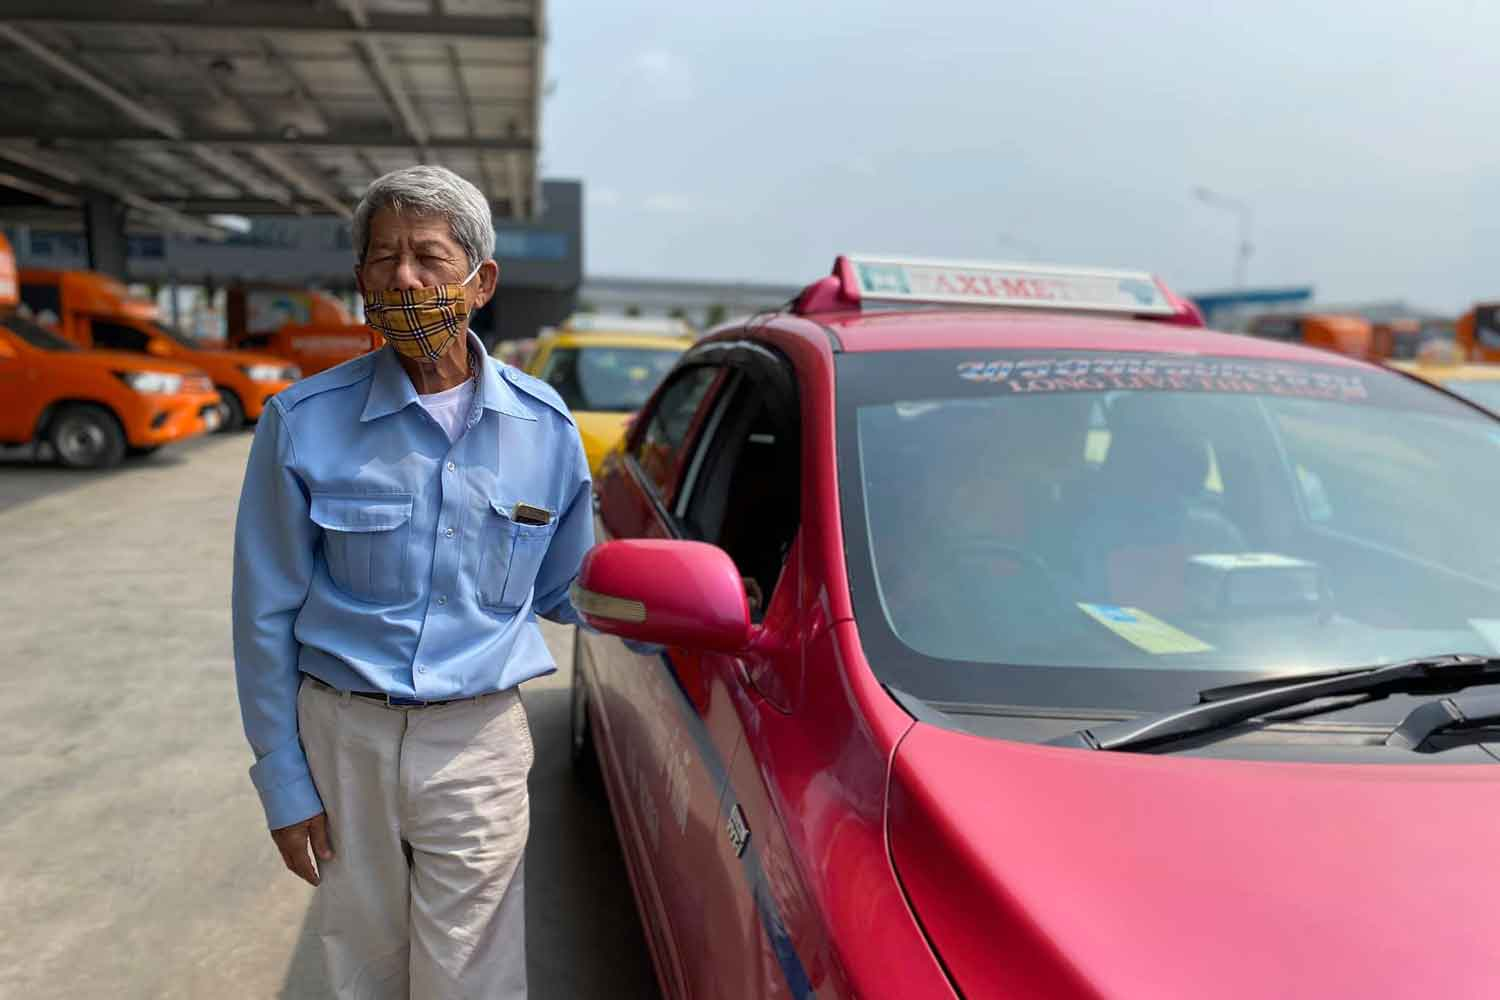 Taxi driver Sitthichai Klaichit poses for photos posted on a TV reporter's